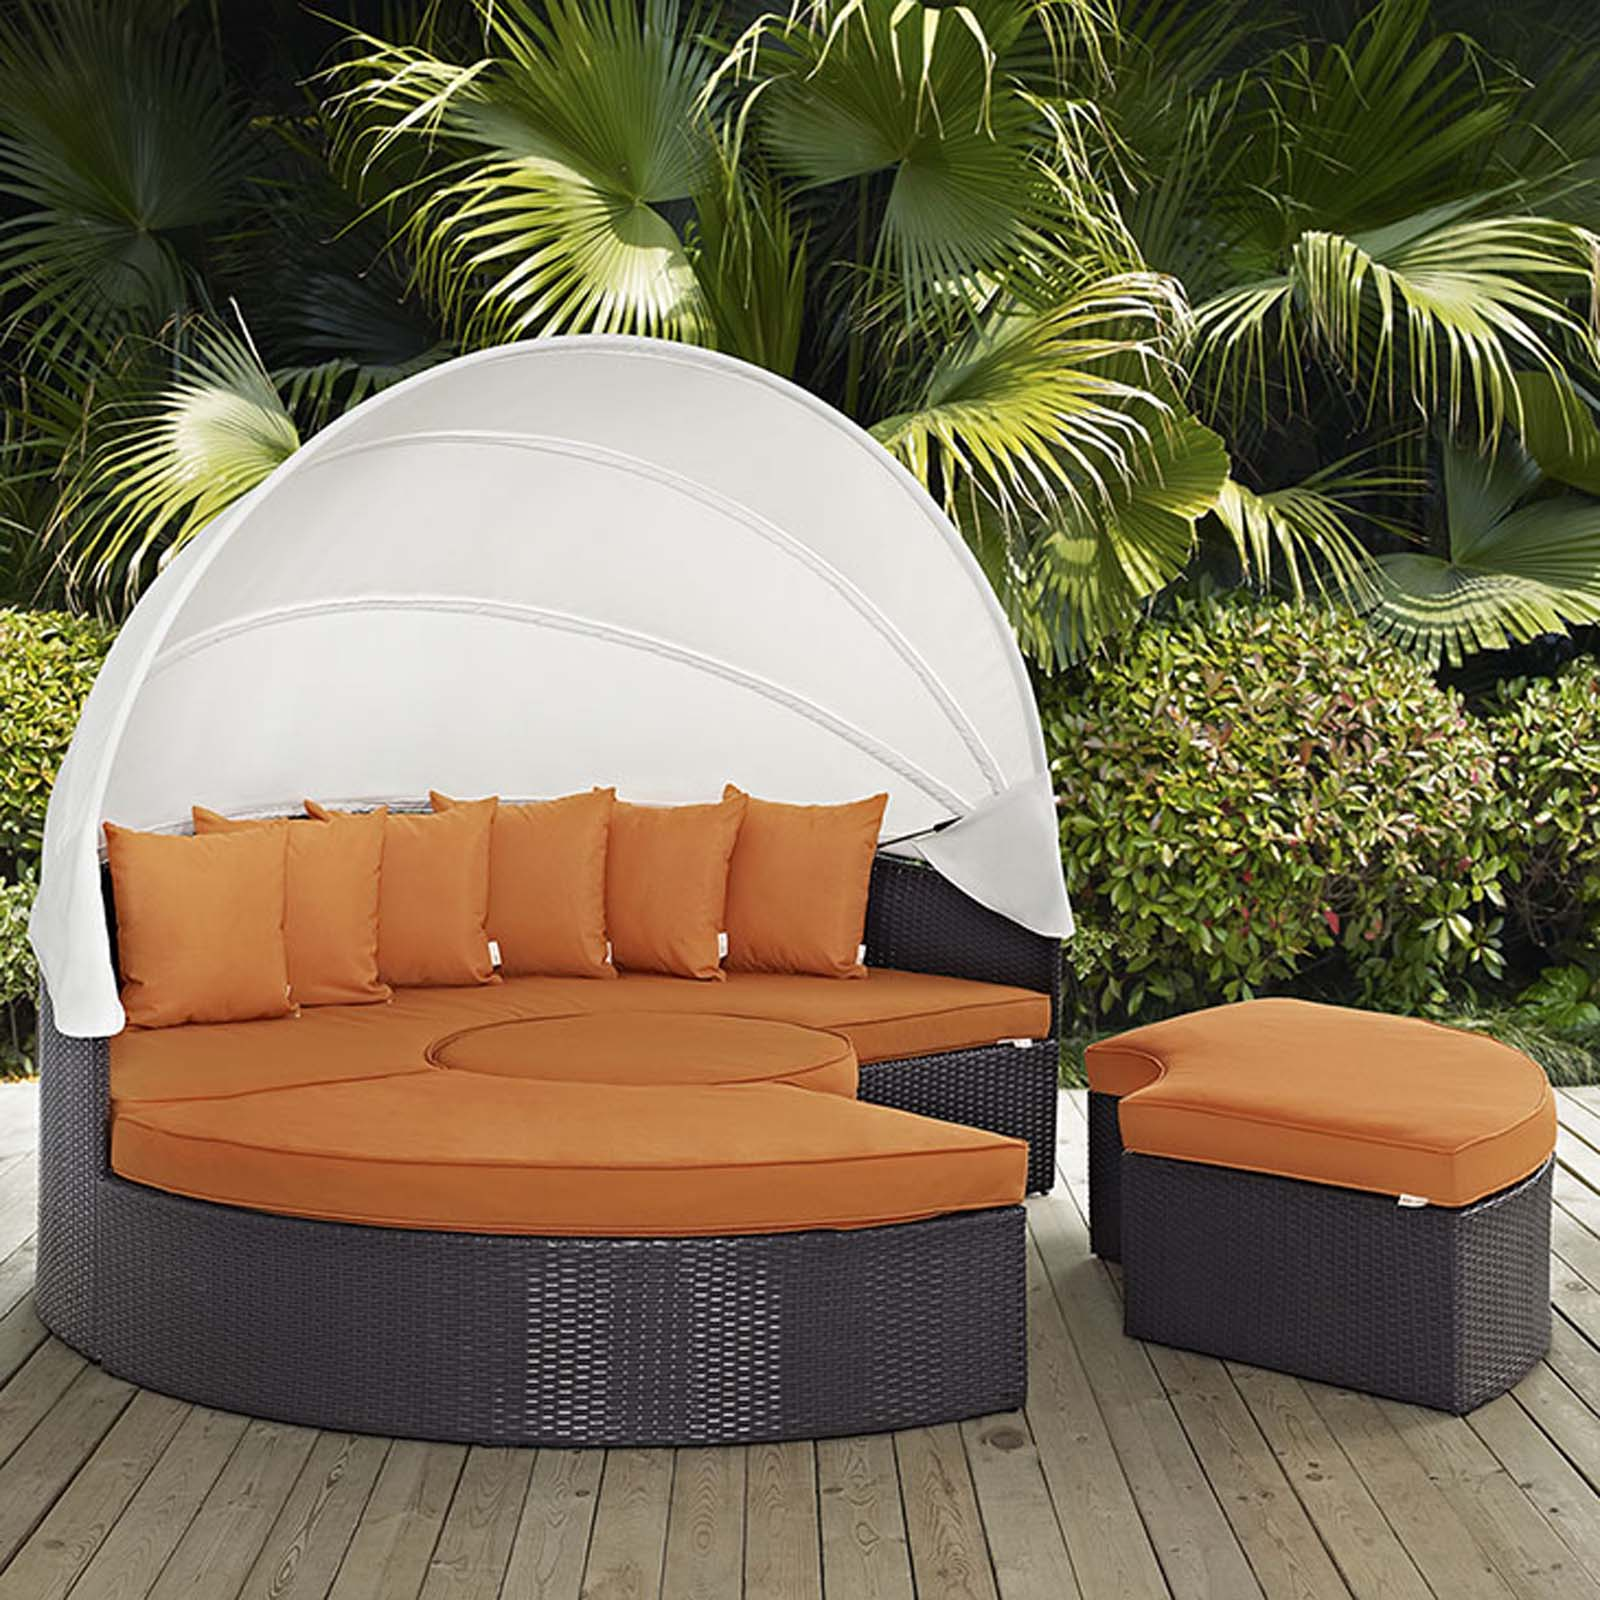 Modterior Outdoor Daybeds Convene Canopy Outdoor Patio Daybed